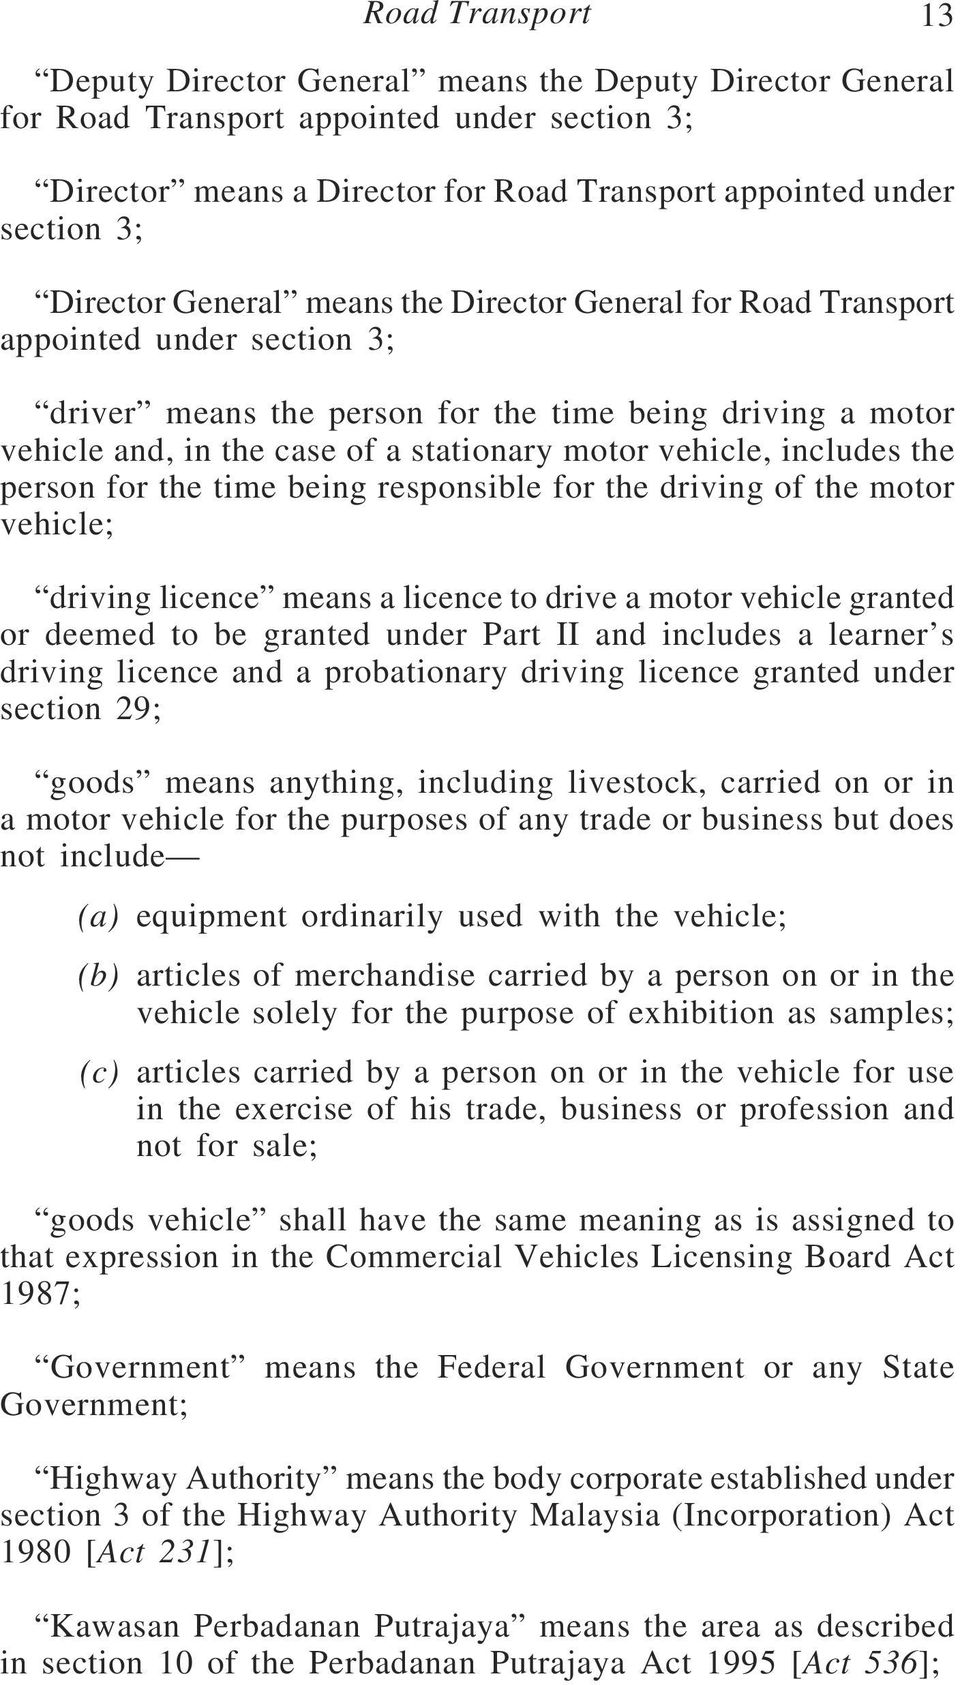 vehicle, includes the person for the time being responsible for the driving of the motor vehicle; driving licence means a licence to drive a motor vehicle granted or deemed to be granted under Part